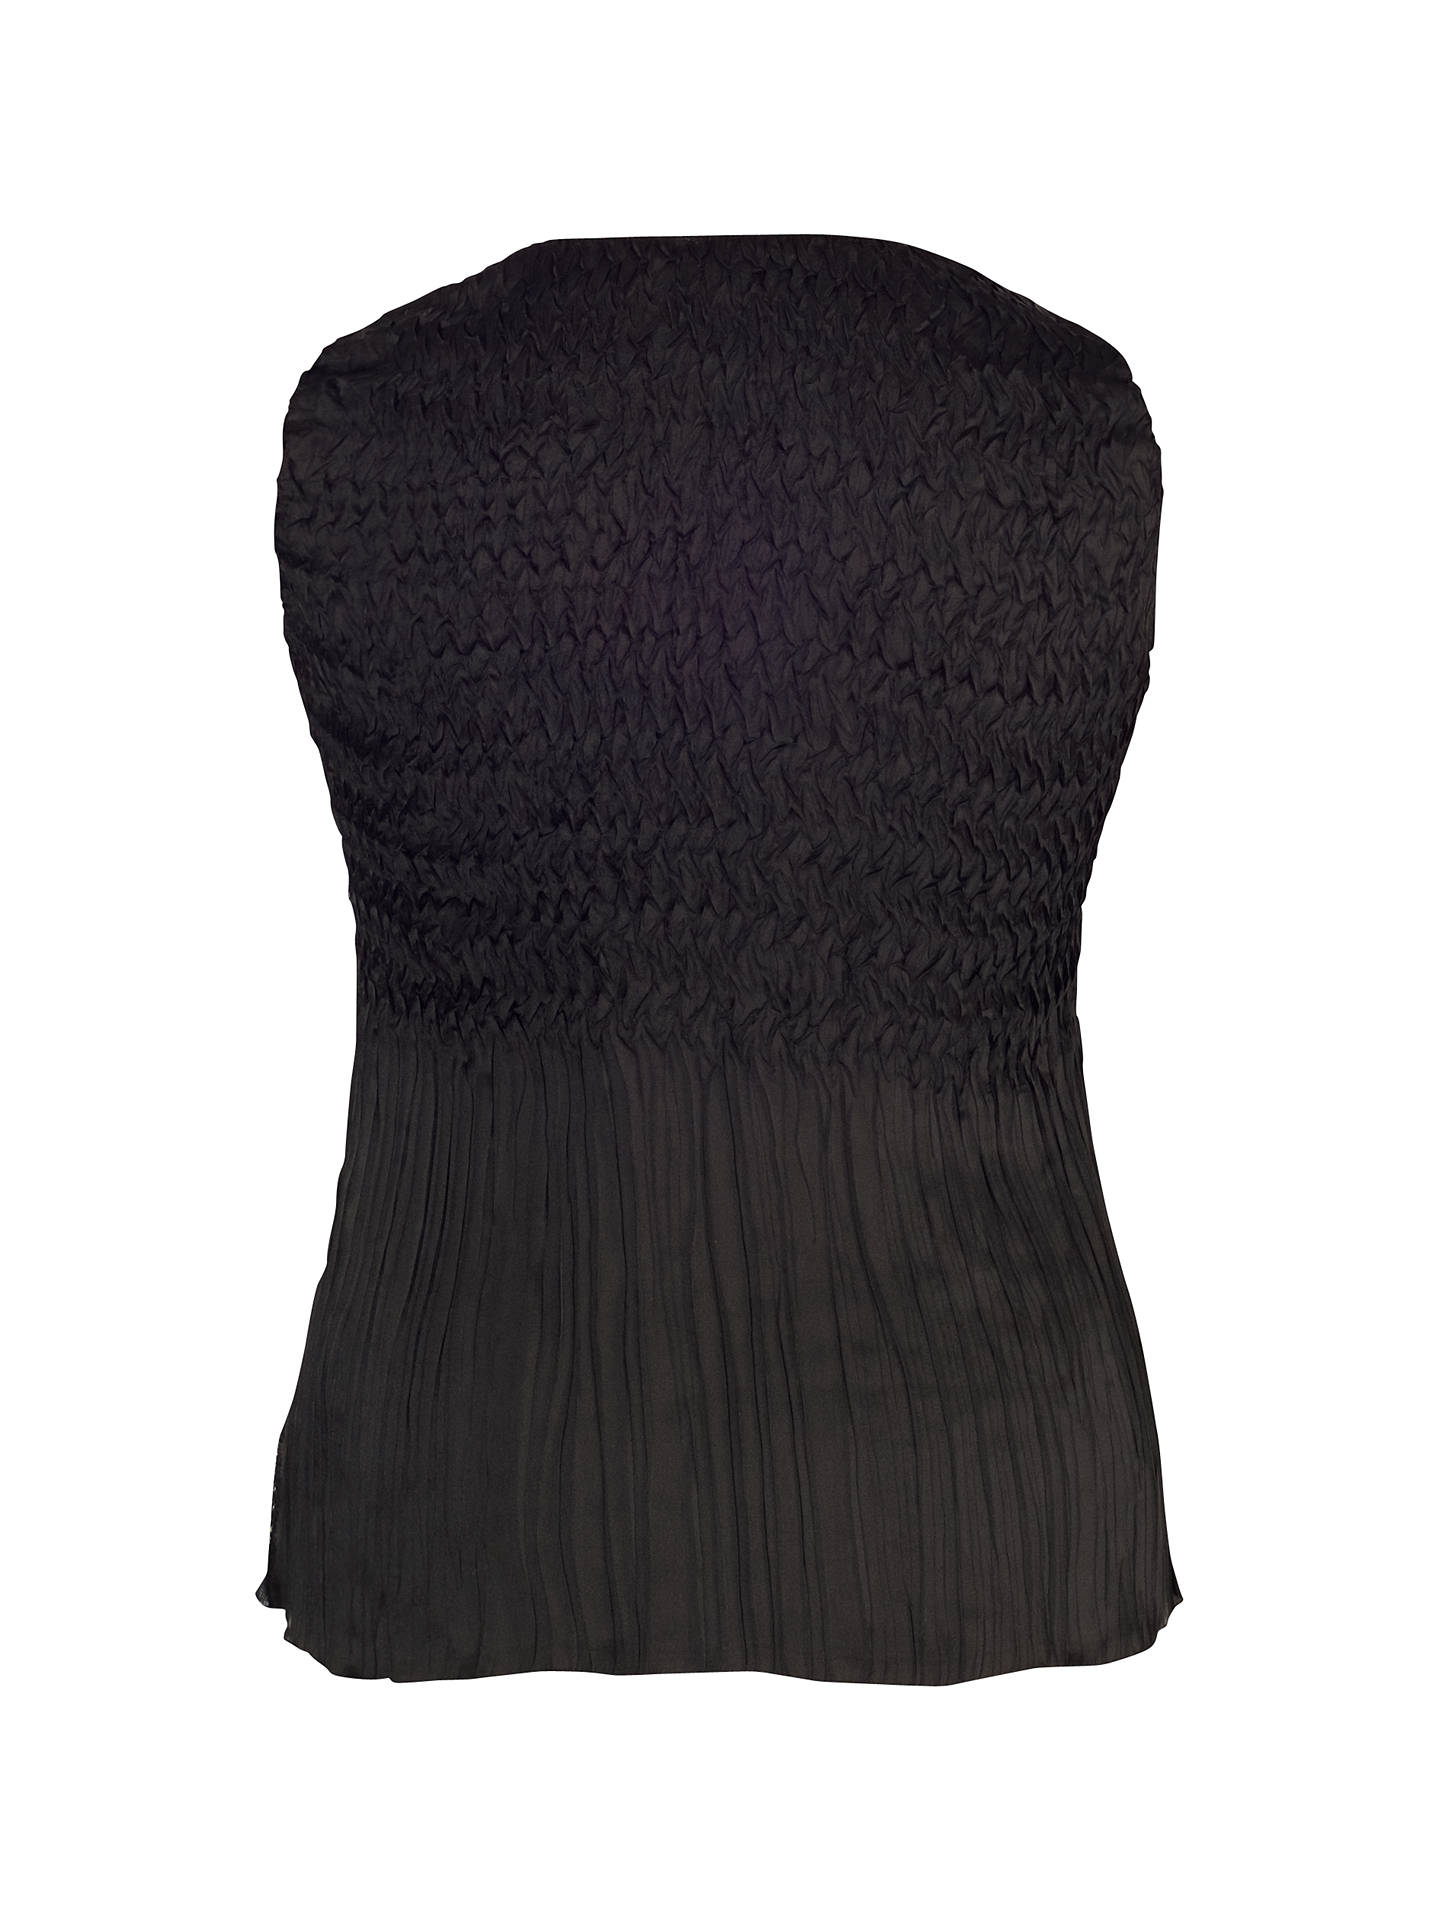 Buy Chesca Patchwork Printed Camisole, Black/Ivory, 12-14 Online at johnlewis.com